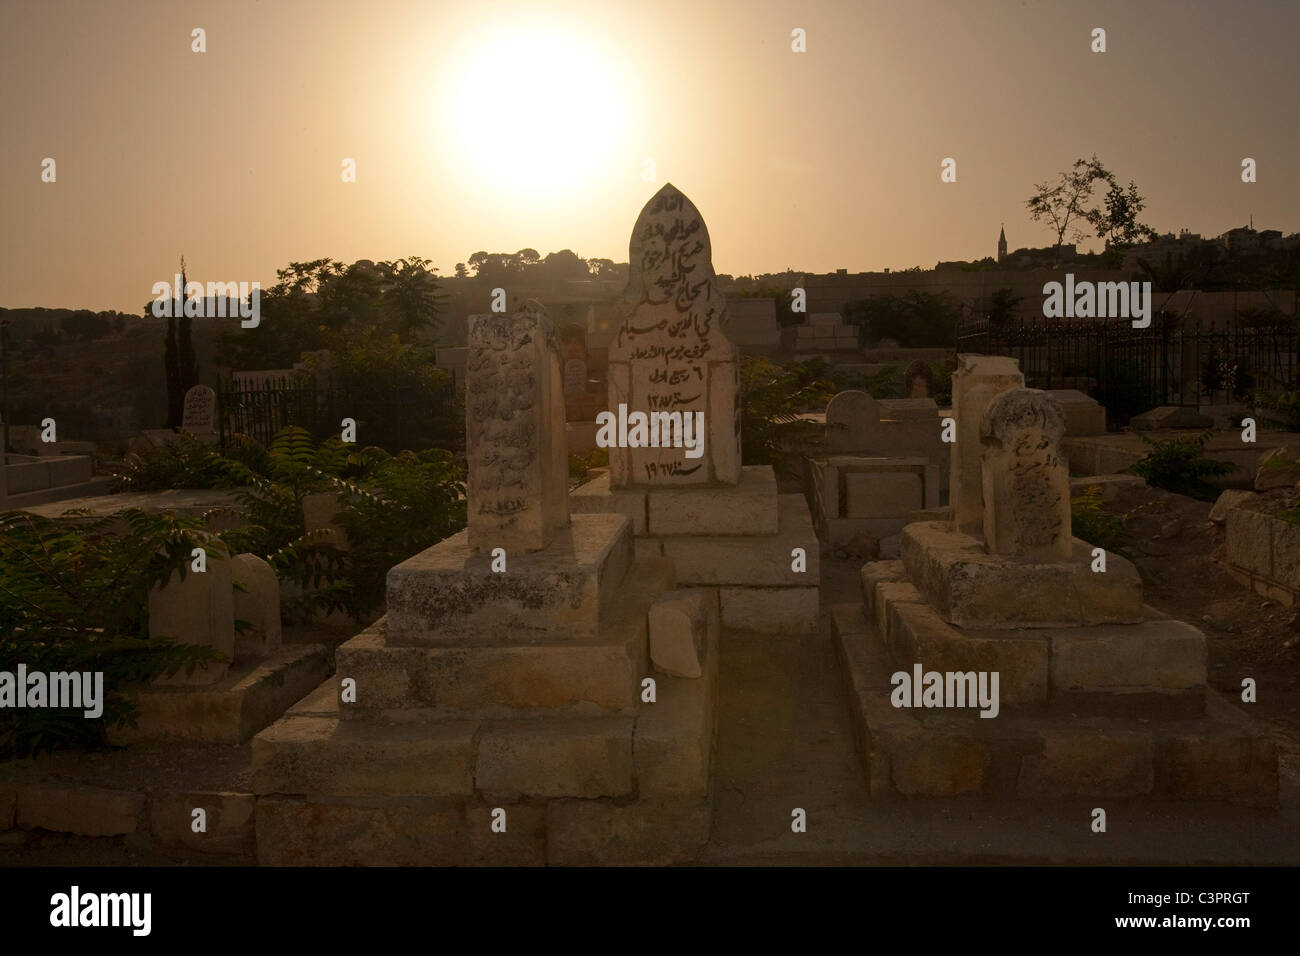 A cemetery near the Western Wall in the Old City of Jerusalem in Israel. Stock Photo